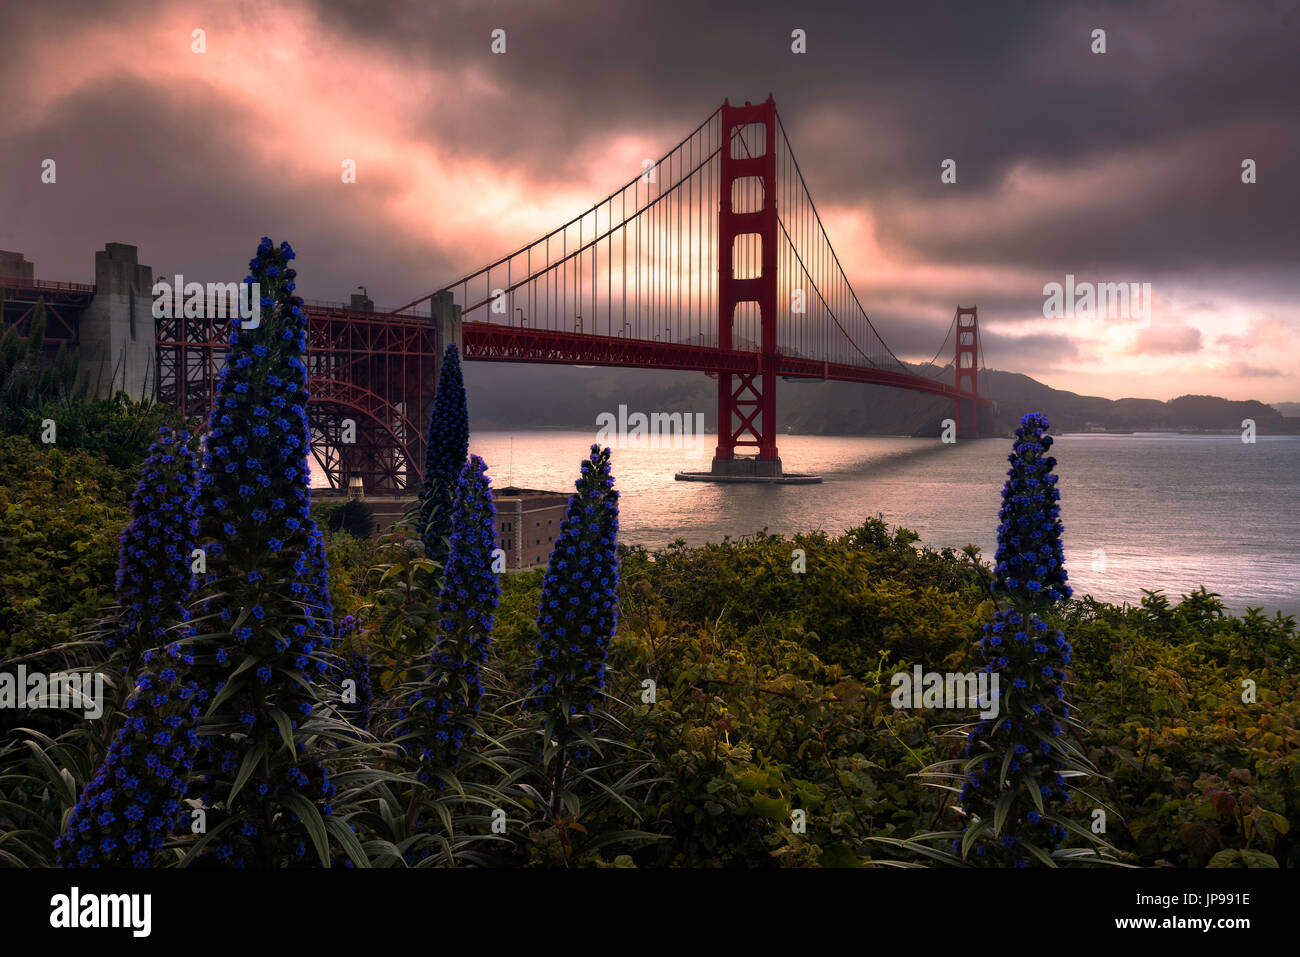 Wildflowers and the Golden Gate Bridge during sunset. - Stock Image